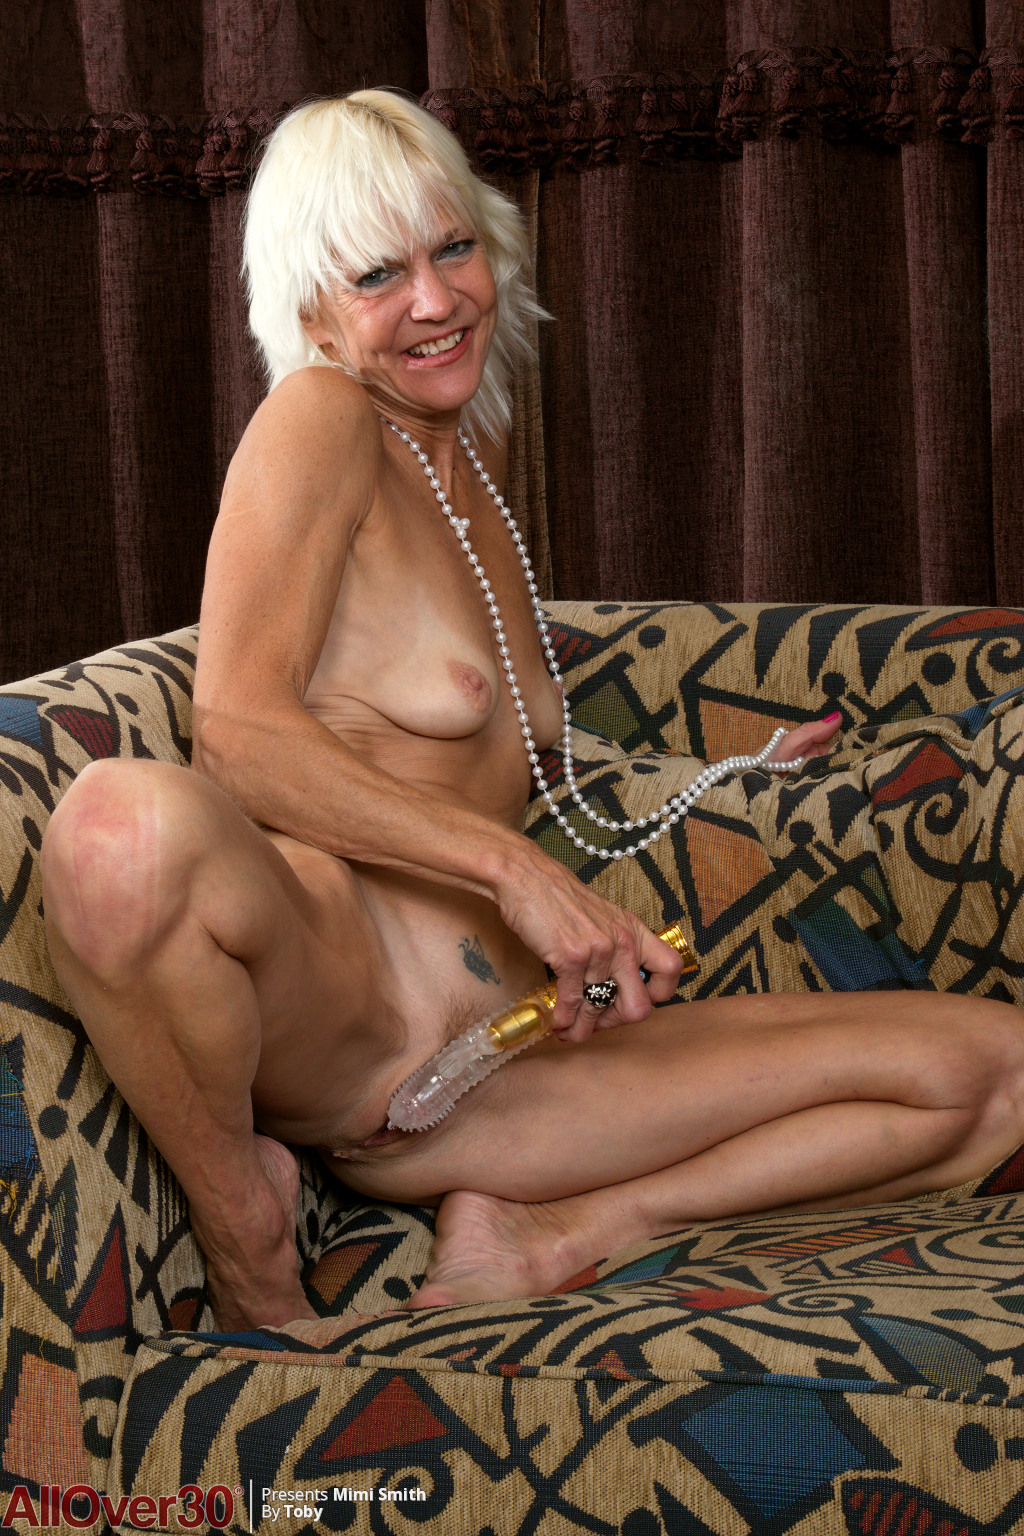 Allover30Freecom- Hot Older Women - 55 Year Old Mimi -2061